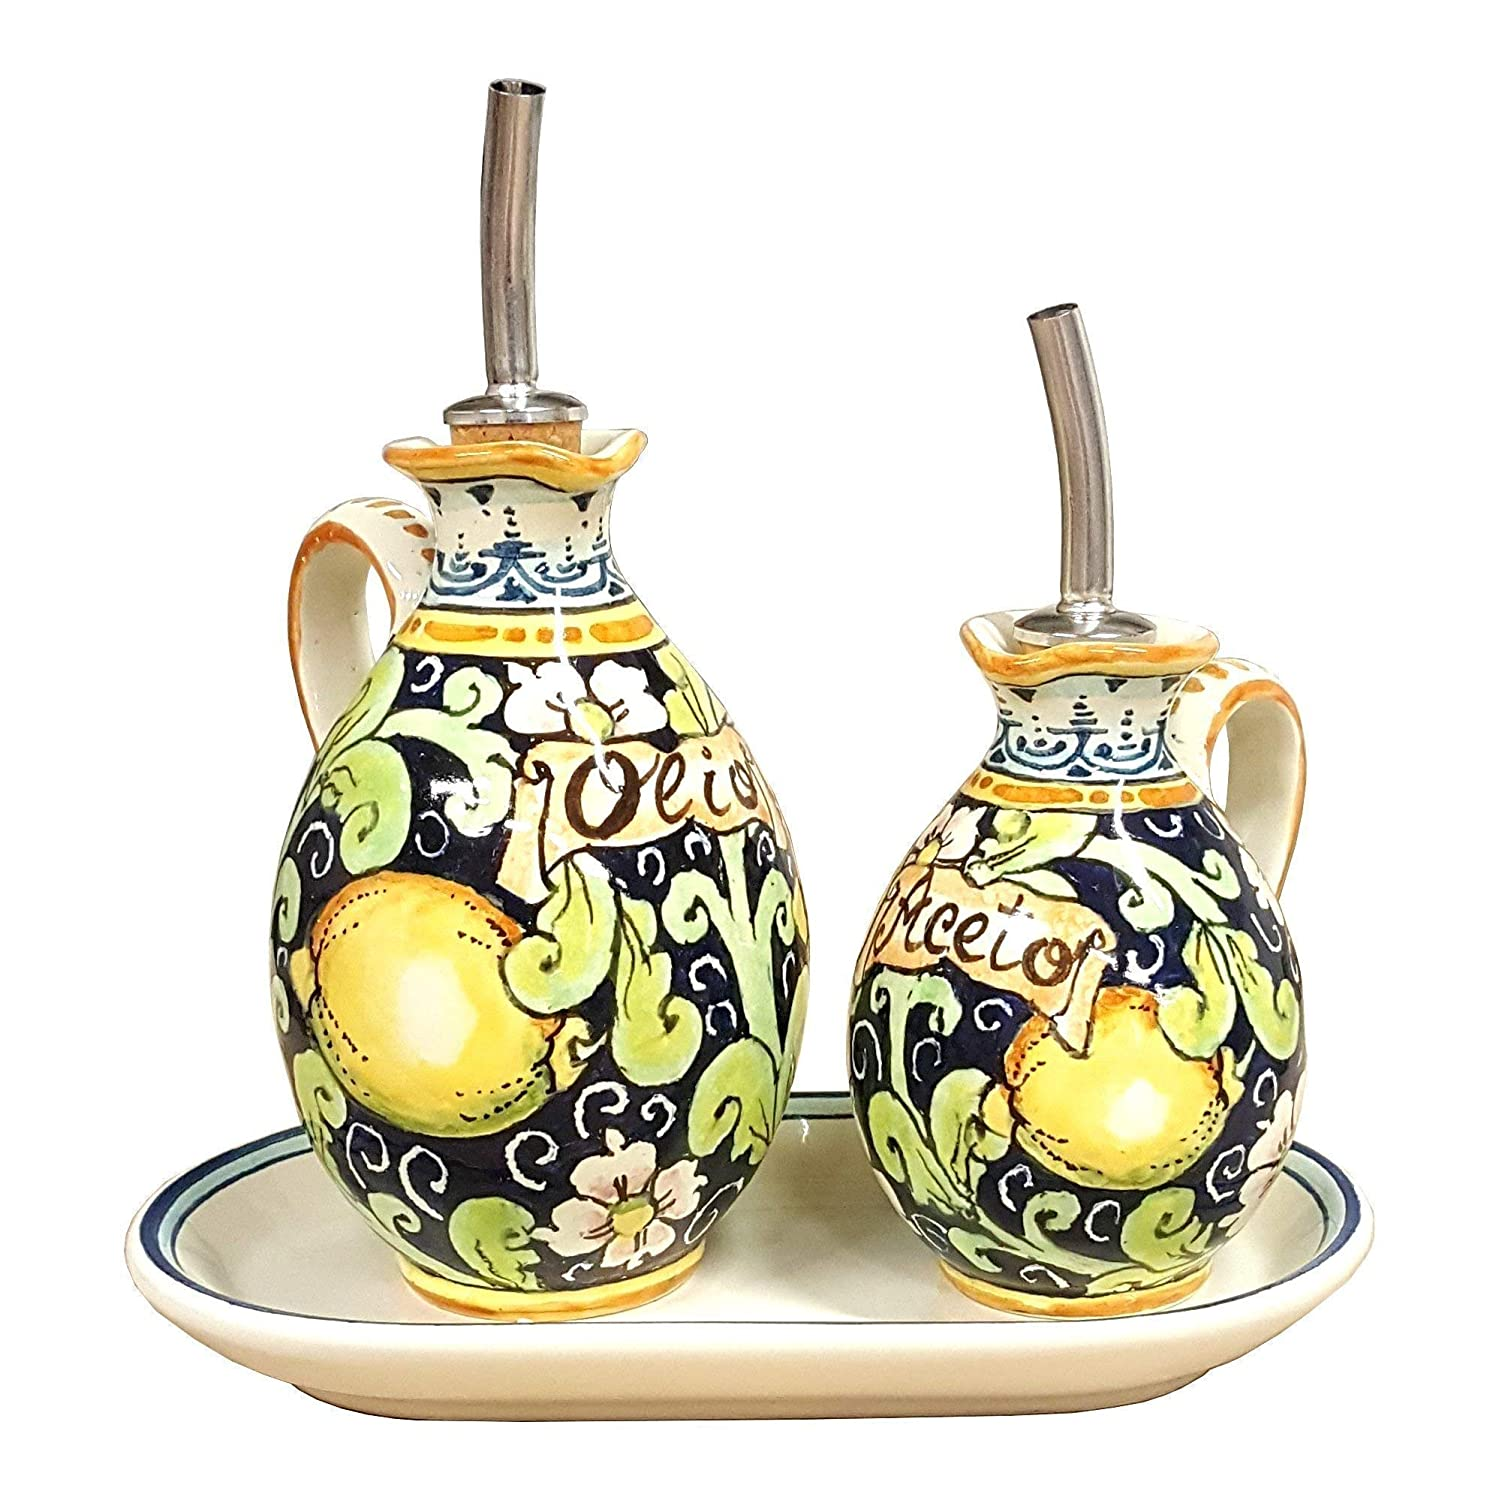 CERAMICHE D'ARTE PARRINI - Italian Ceramic Set Cruets Oil And Vinegar + Small Tray Decorated Lemons Art Pottery Hand Painted Made in ITALY Tuscan